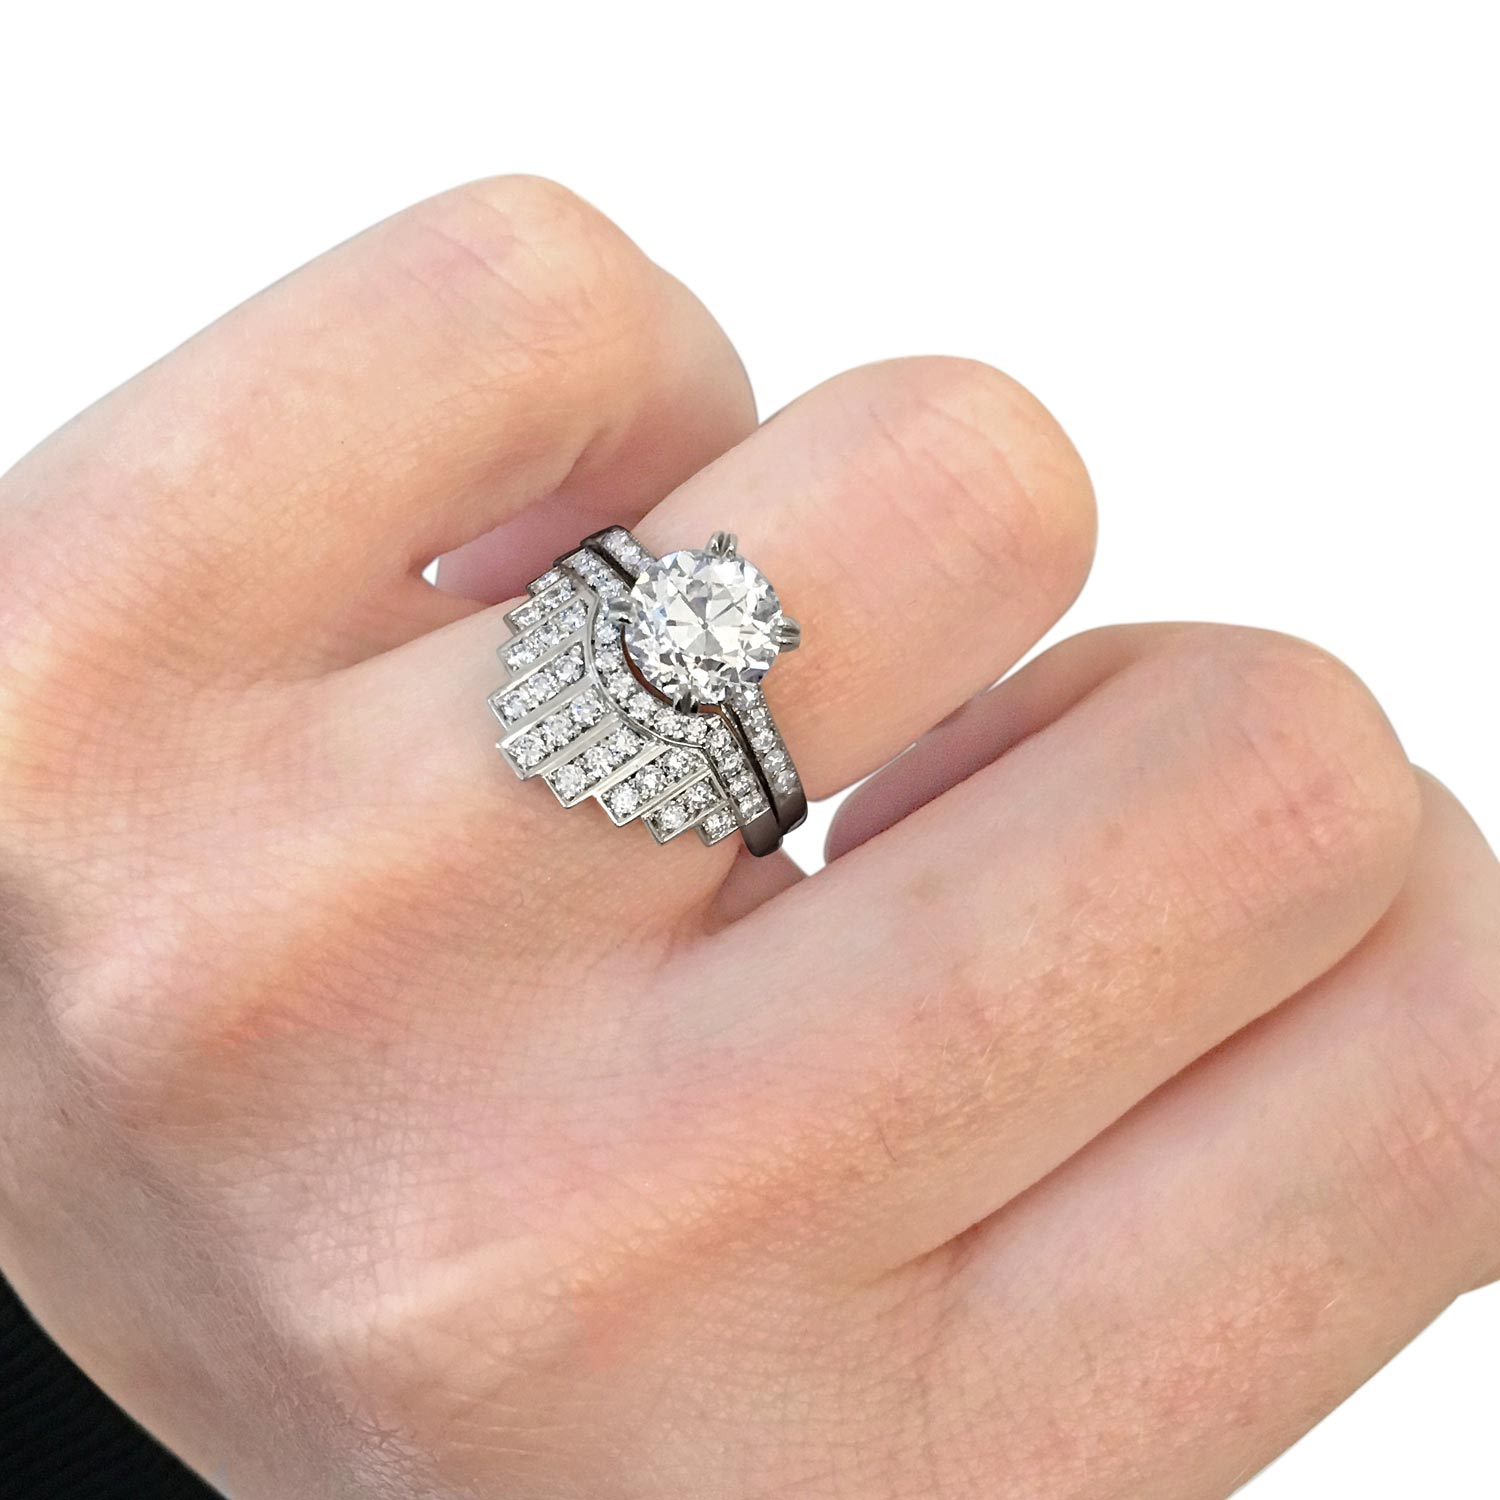 Bespoke fitted brilliant-cut diamond and platinum wedding ring hand